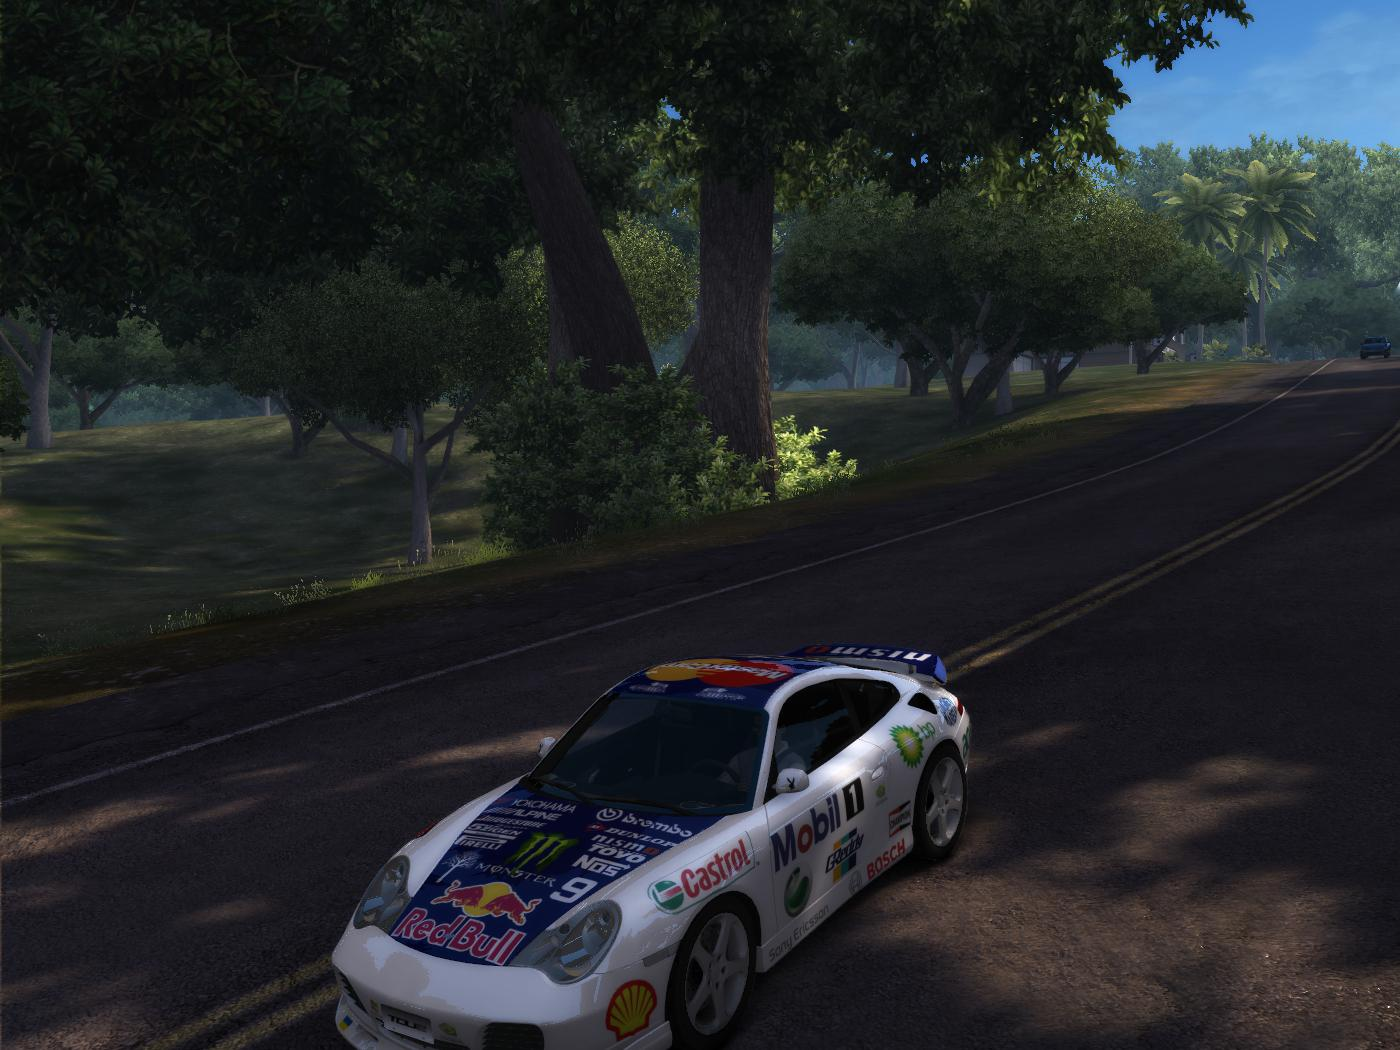 ruf1 - Test Drive Unlimited 2